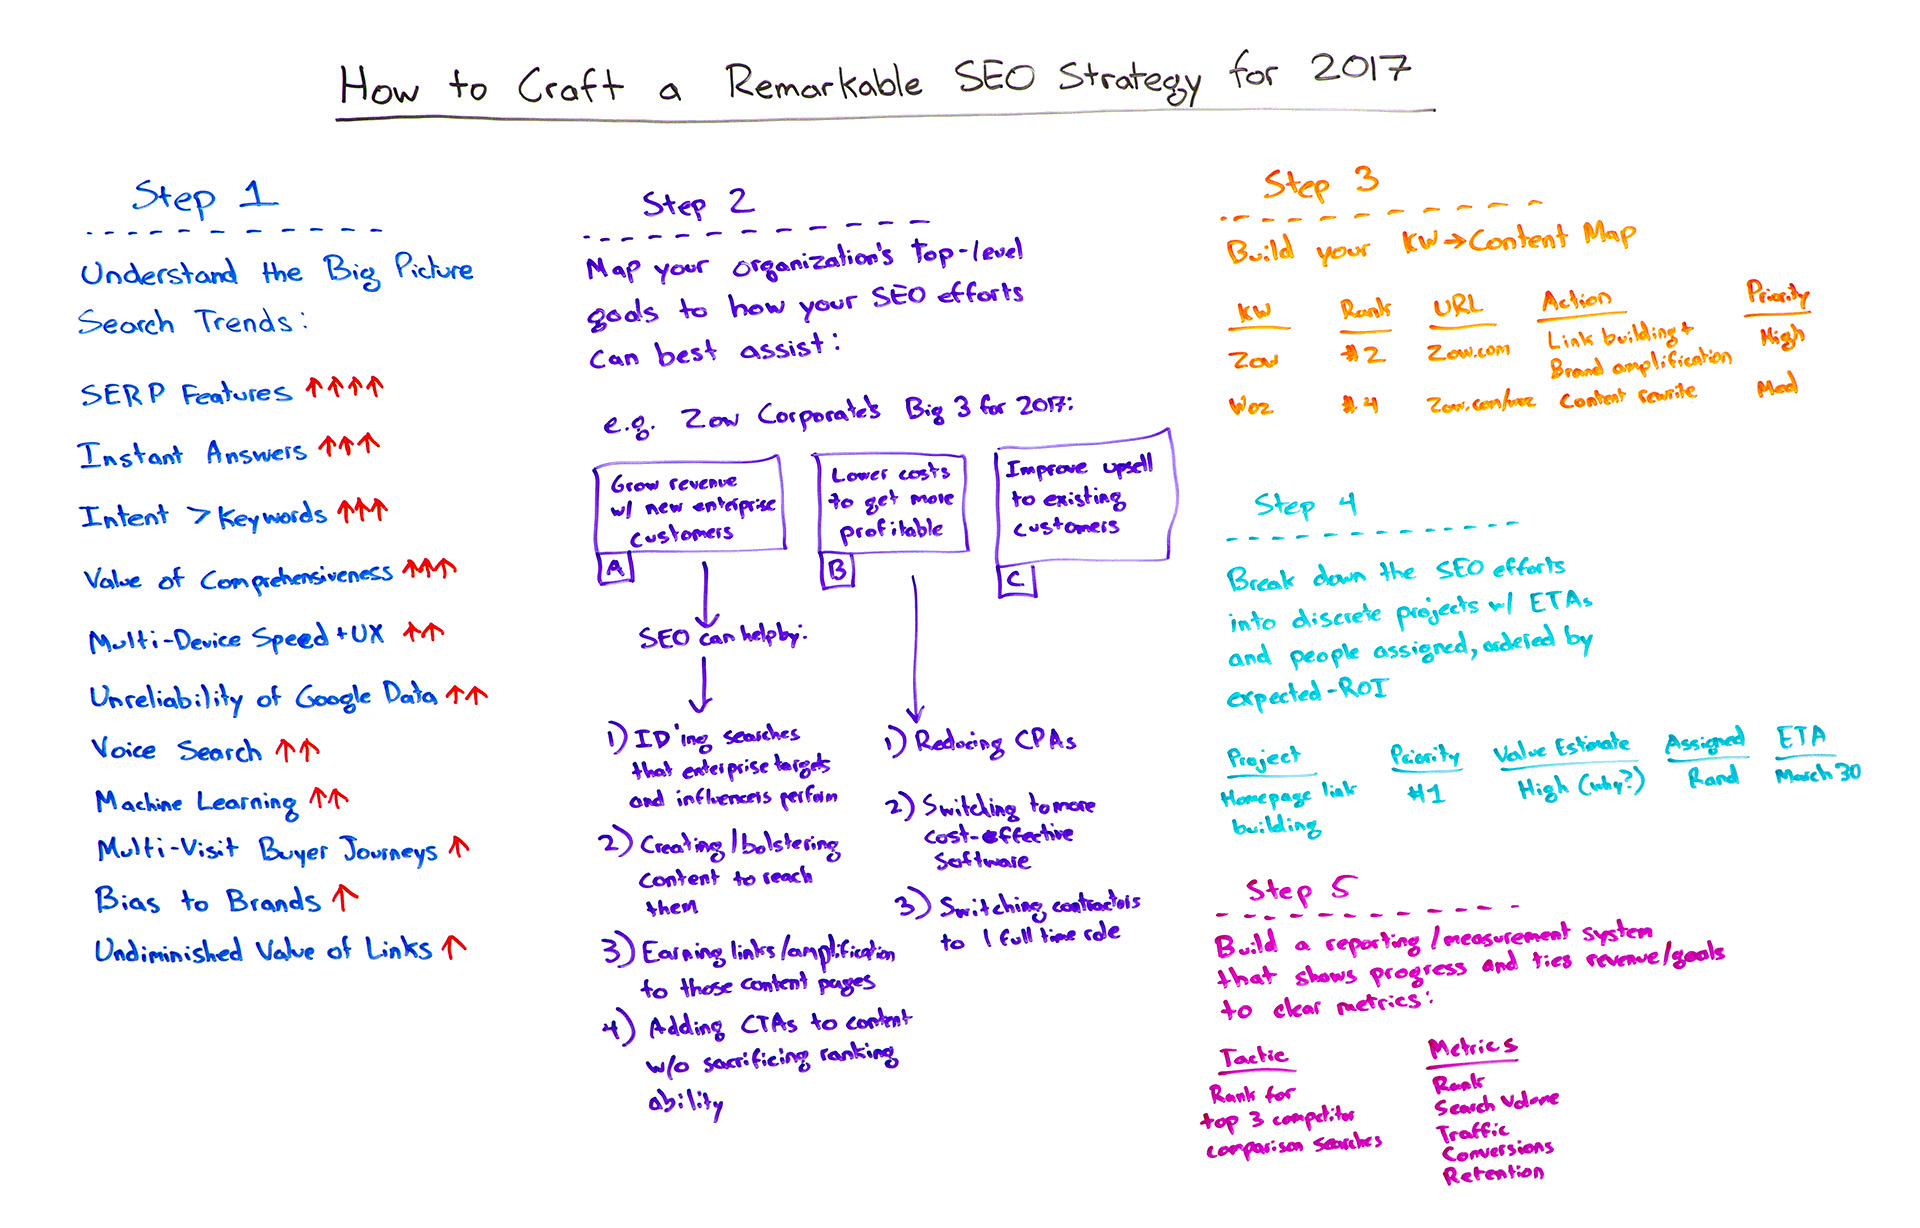 How to Craft a Remarkable SEO Strategy for 2017 - Whiteboard Friday